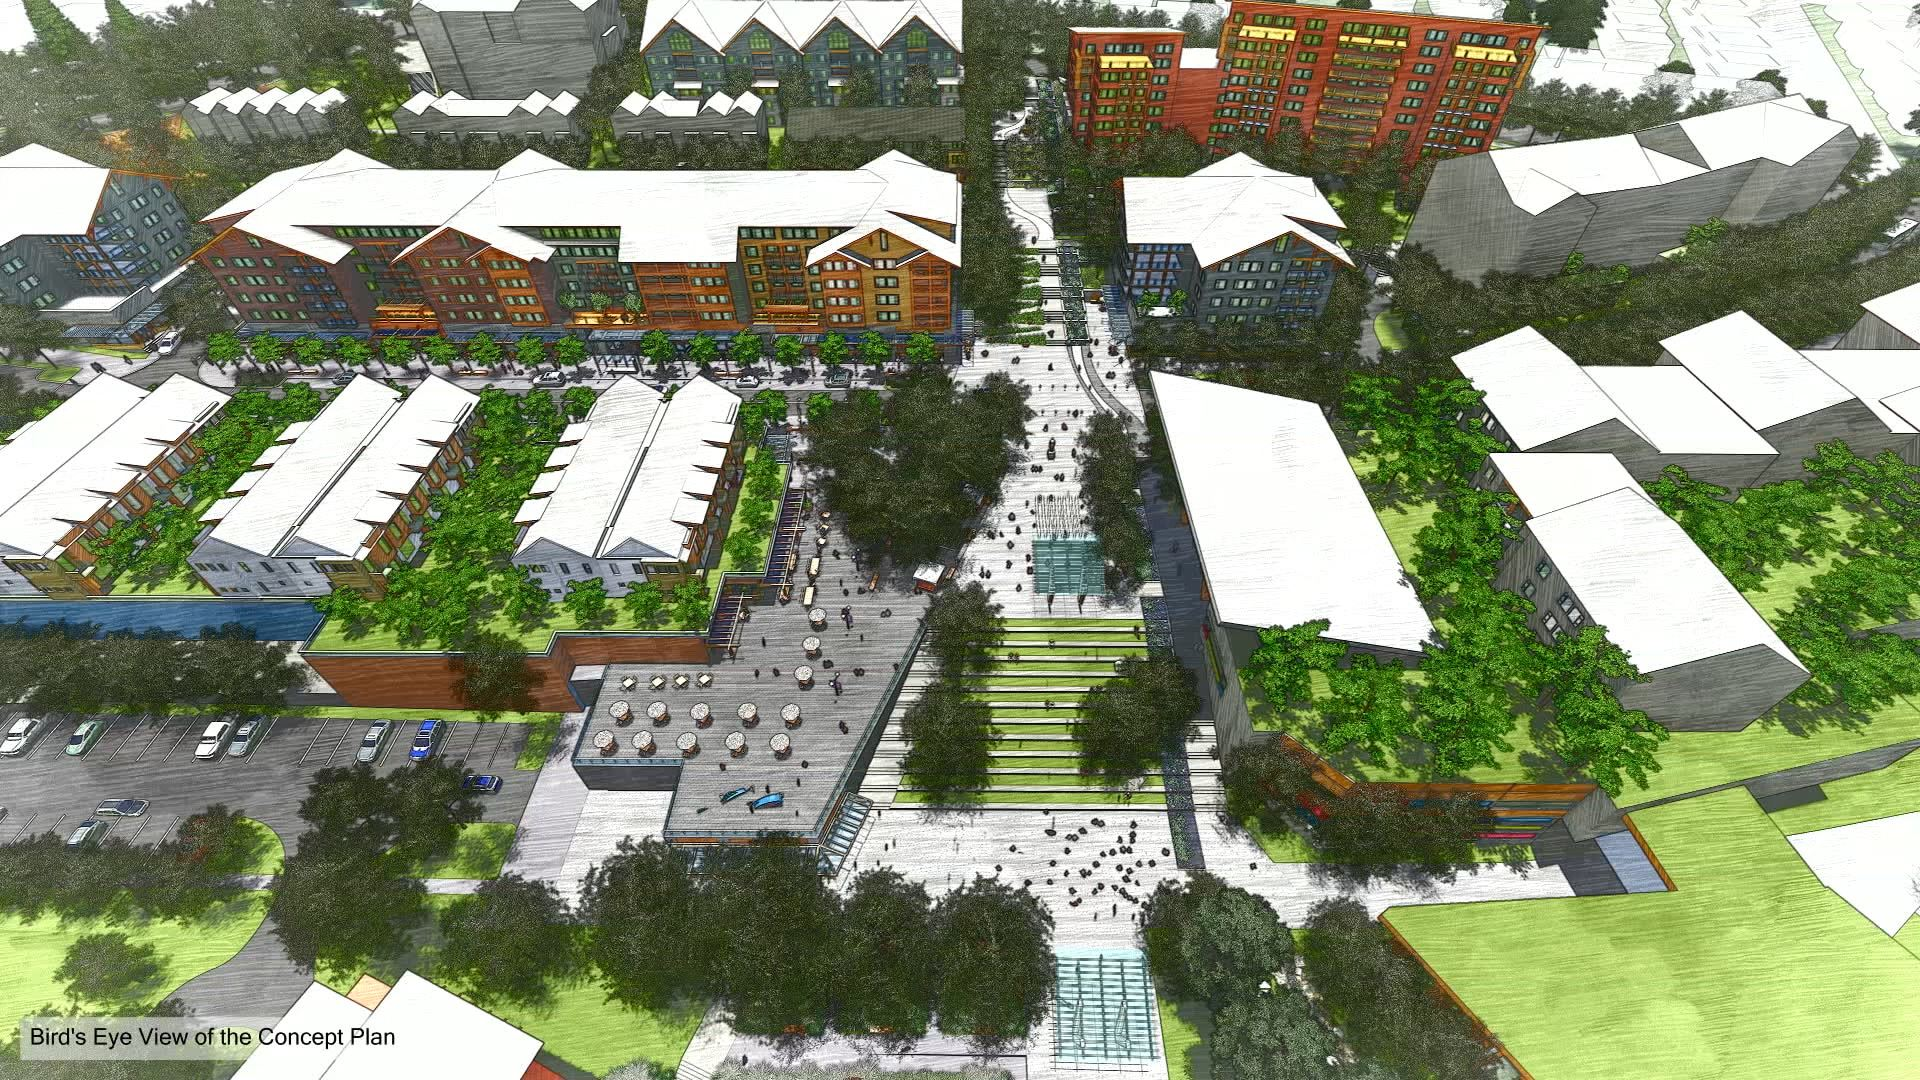 Bird's eye view of Concept Plan